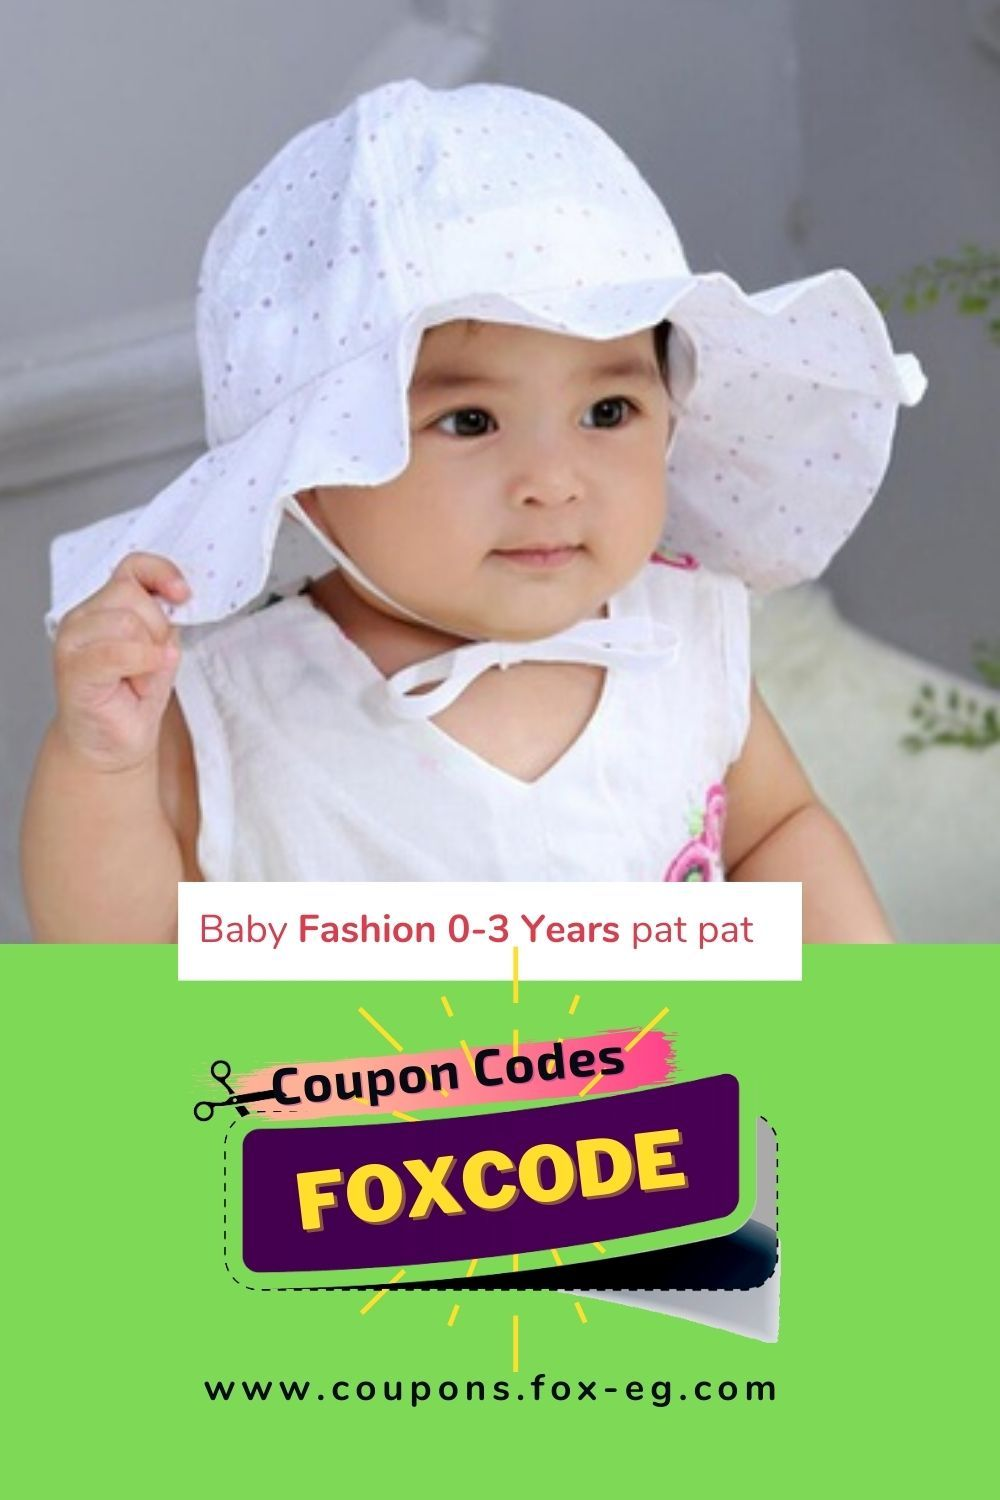 50% ( ( YWJYJP ) ) Coupon Code - [Only 3 Hours Left] | SEP 2020 - ( YWJYJP ) diy baby stuff, newborn baby clothes, baby boy fall outfits, baby gear, baby clothes organization, winter baby clothes, 3rd baby, baby girl, clothes winter, girl winter outfits, baby girl styles, winter girl outfits, girl outfits winter #babyonboard #familyfirst #familygoals #familytime #sanzibelly #hellobaby #babybelly #babybumb #lеtsgettogеthеr1 #friends #girls